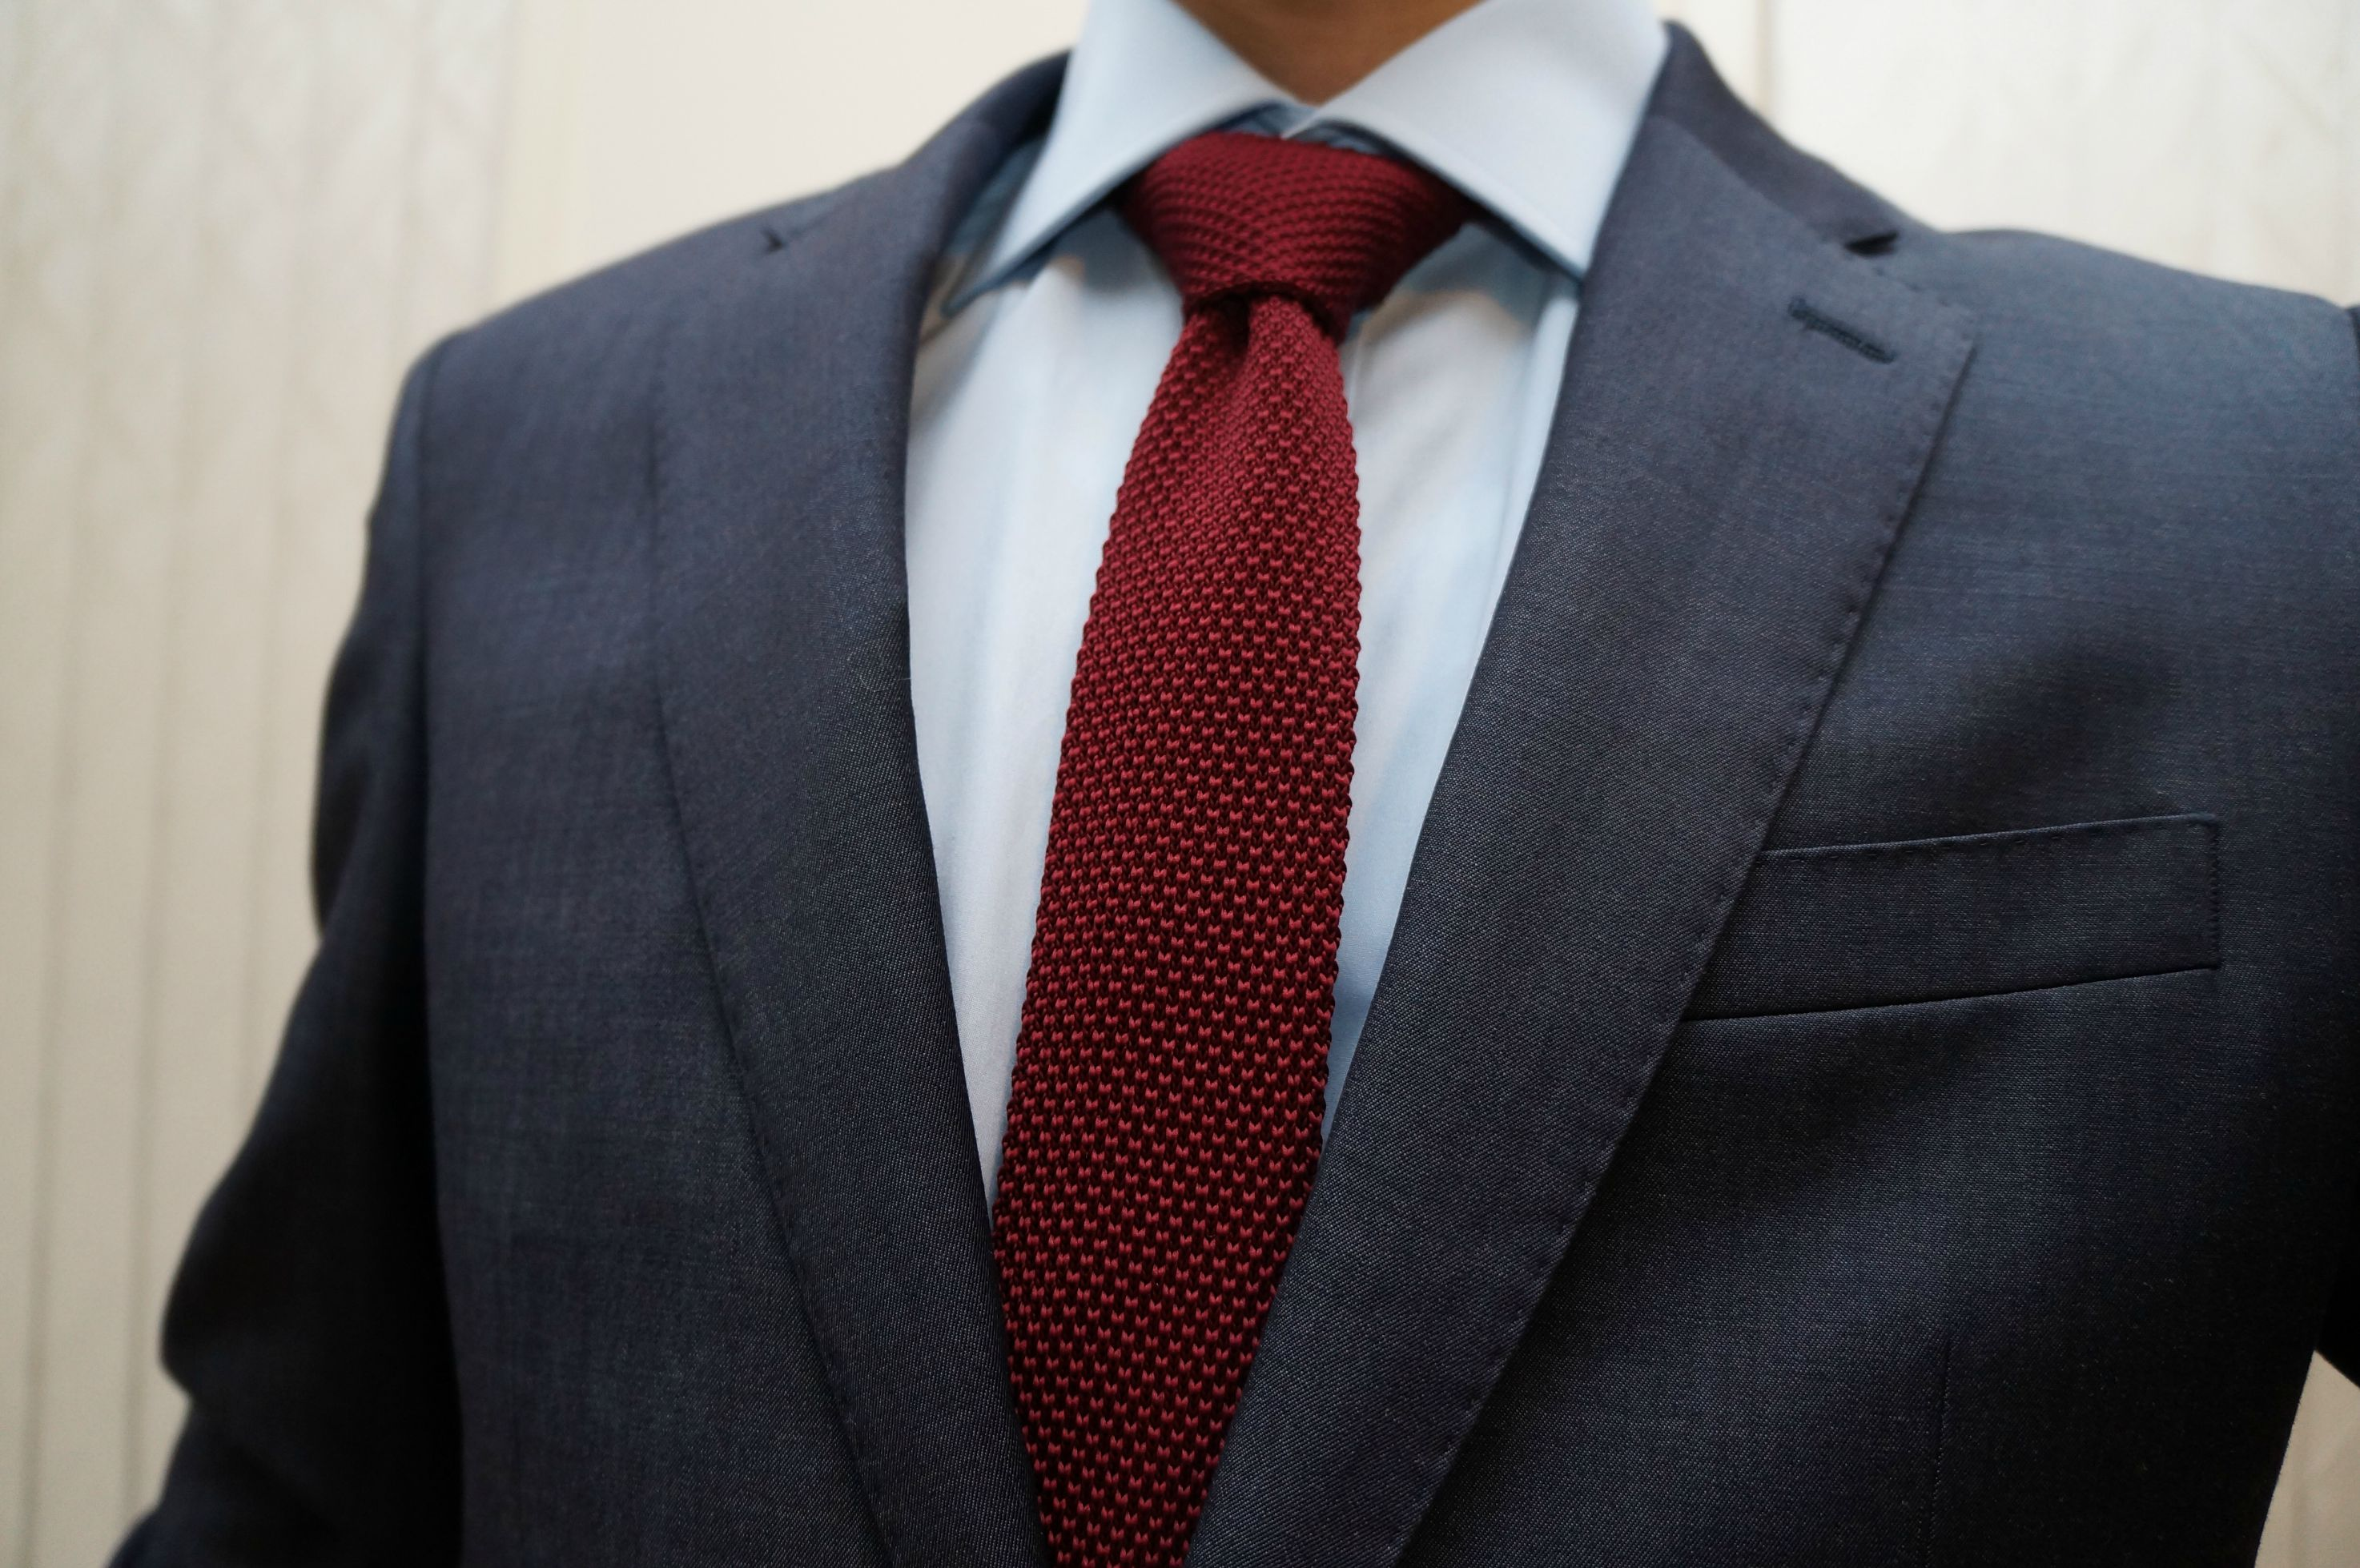 Suits and ties colors and combinations